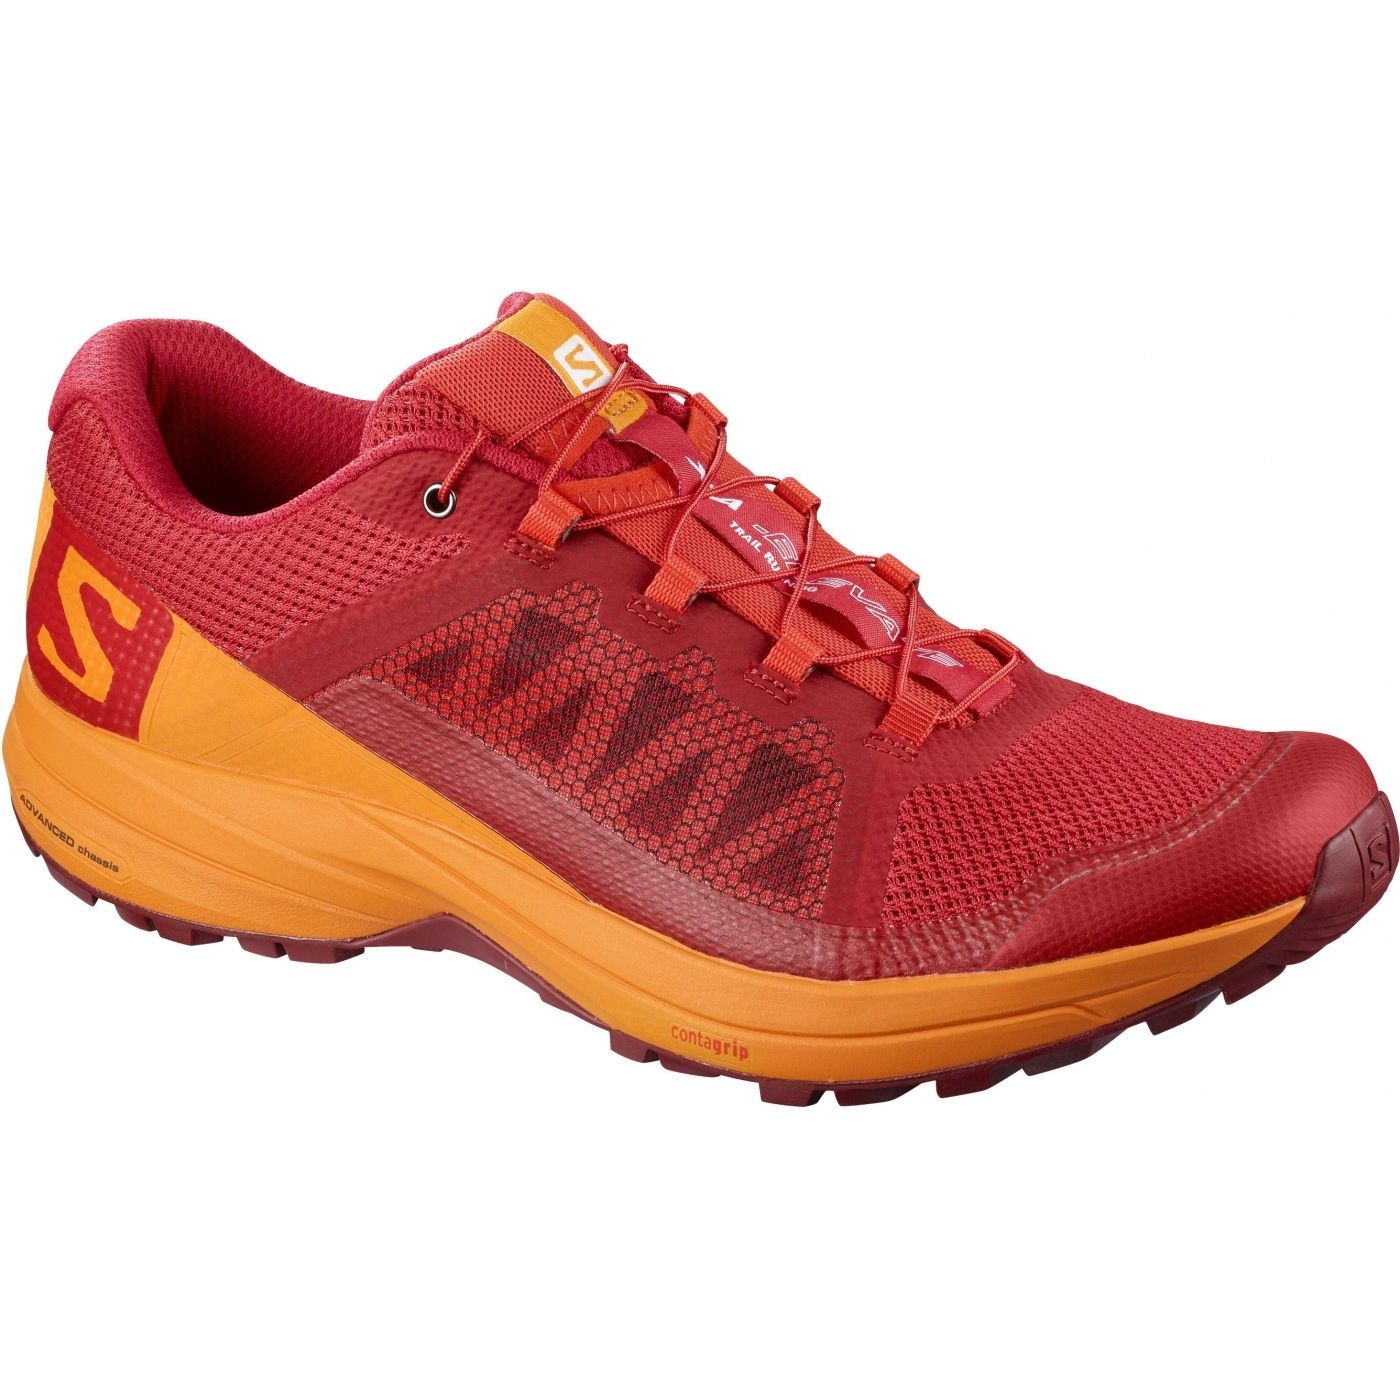 Elevate Xa Barbados Chaussures Salomon Cherry qPpCRnxEH